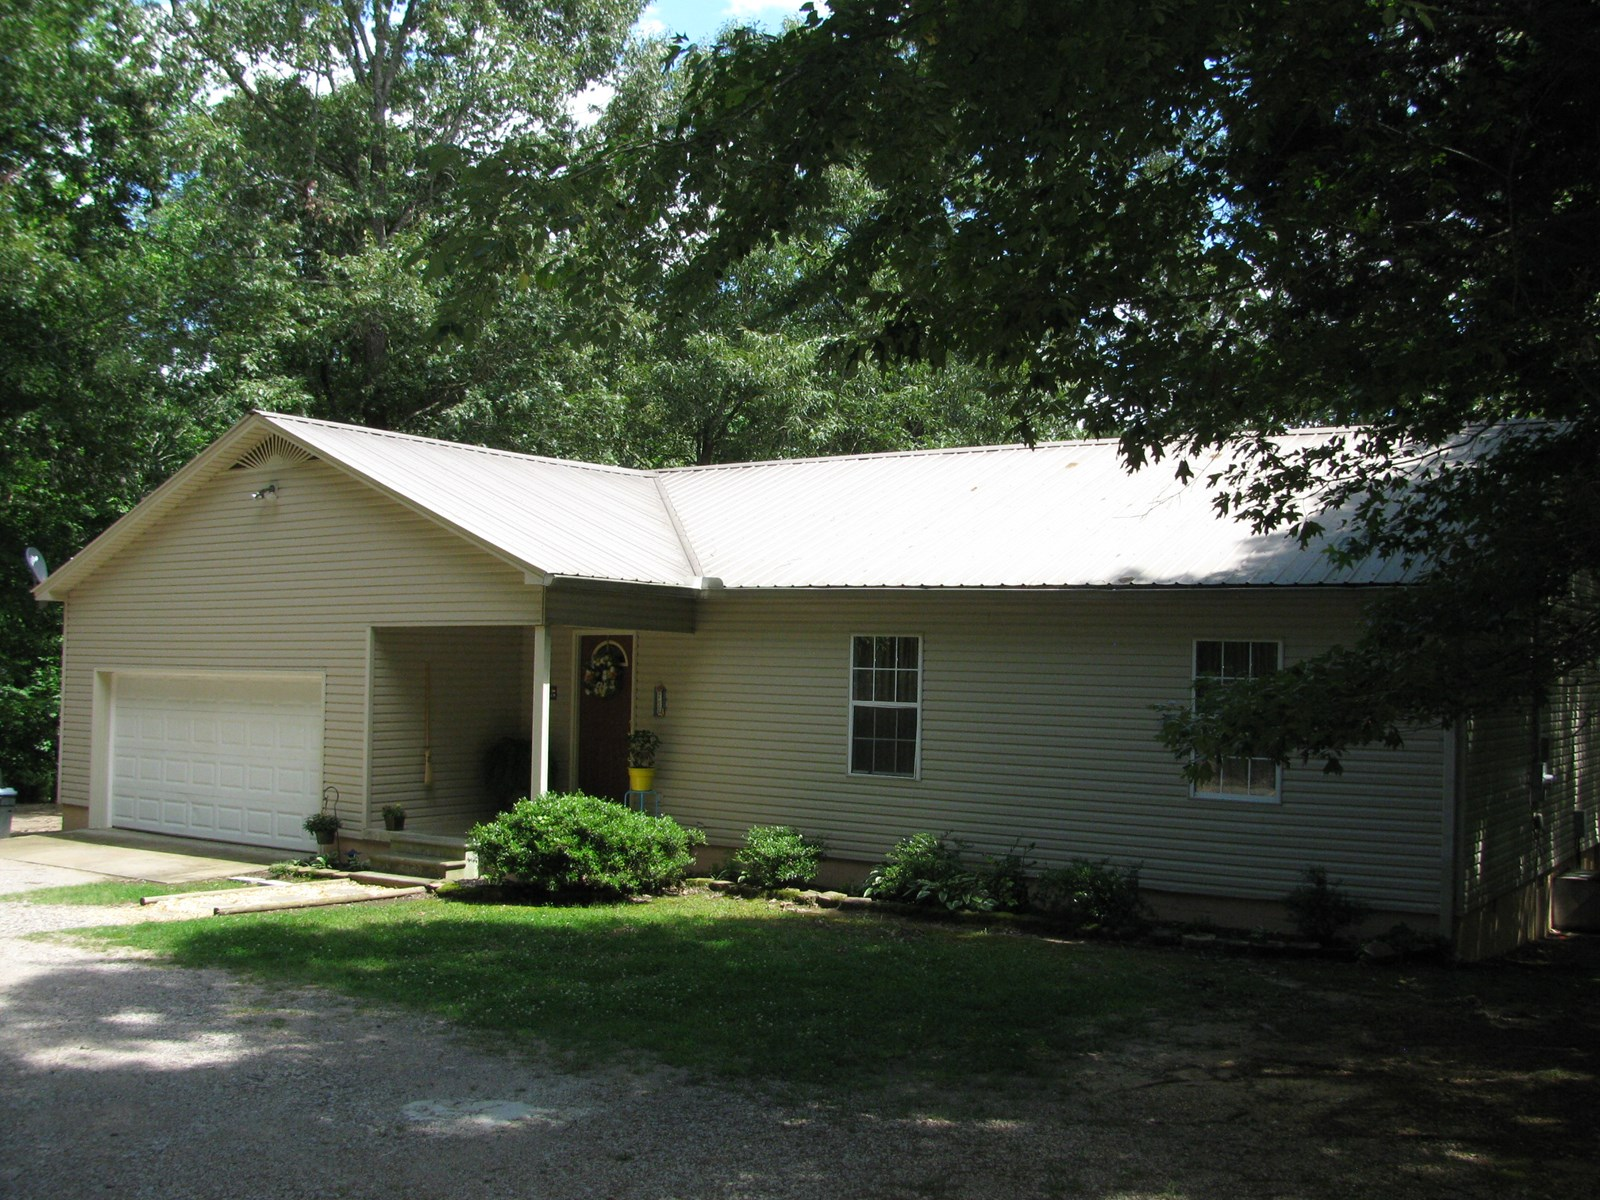 COUNTRY HOME FOR SALE ON 15 AC IN TN, POND